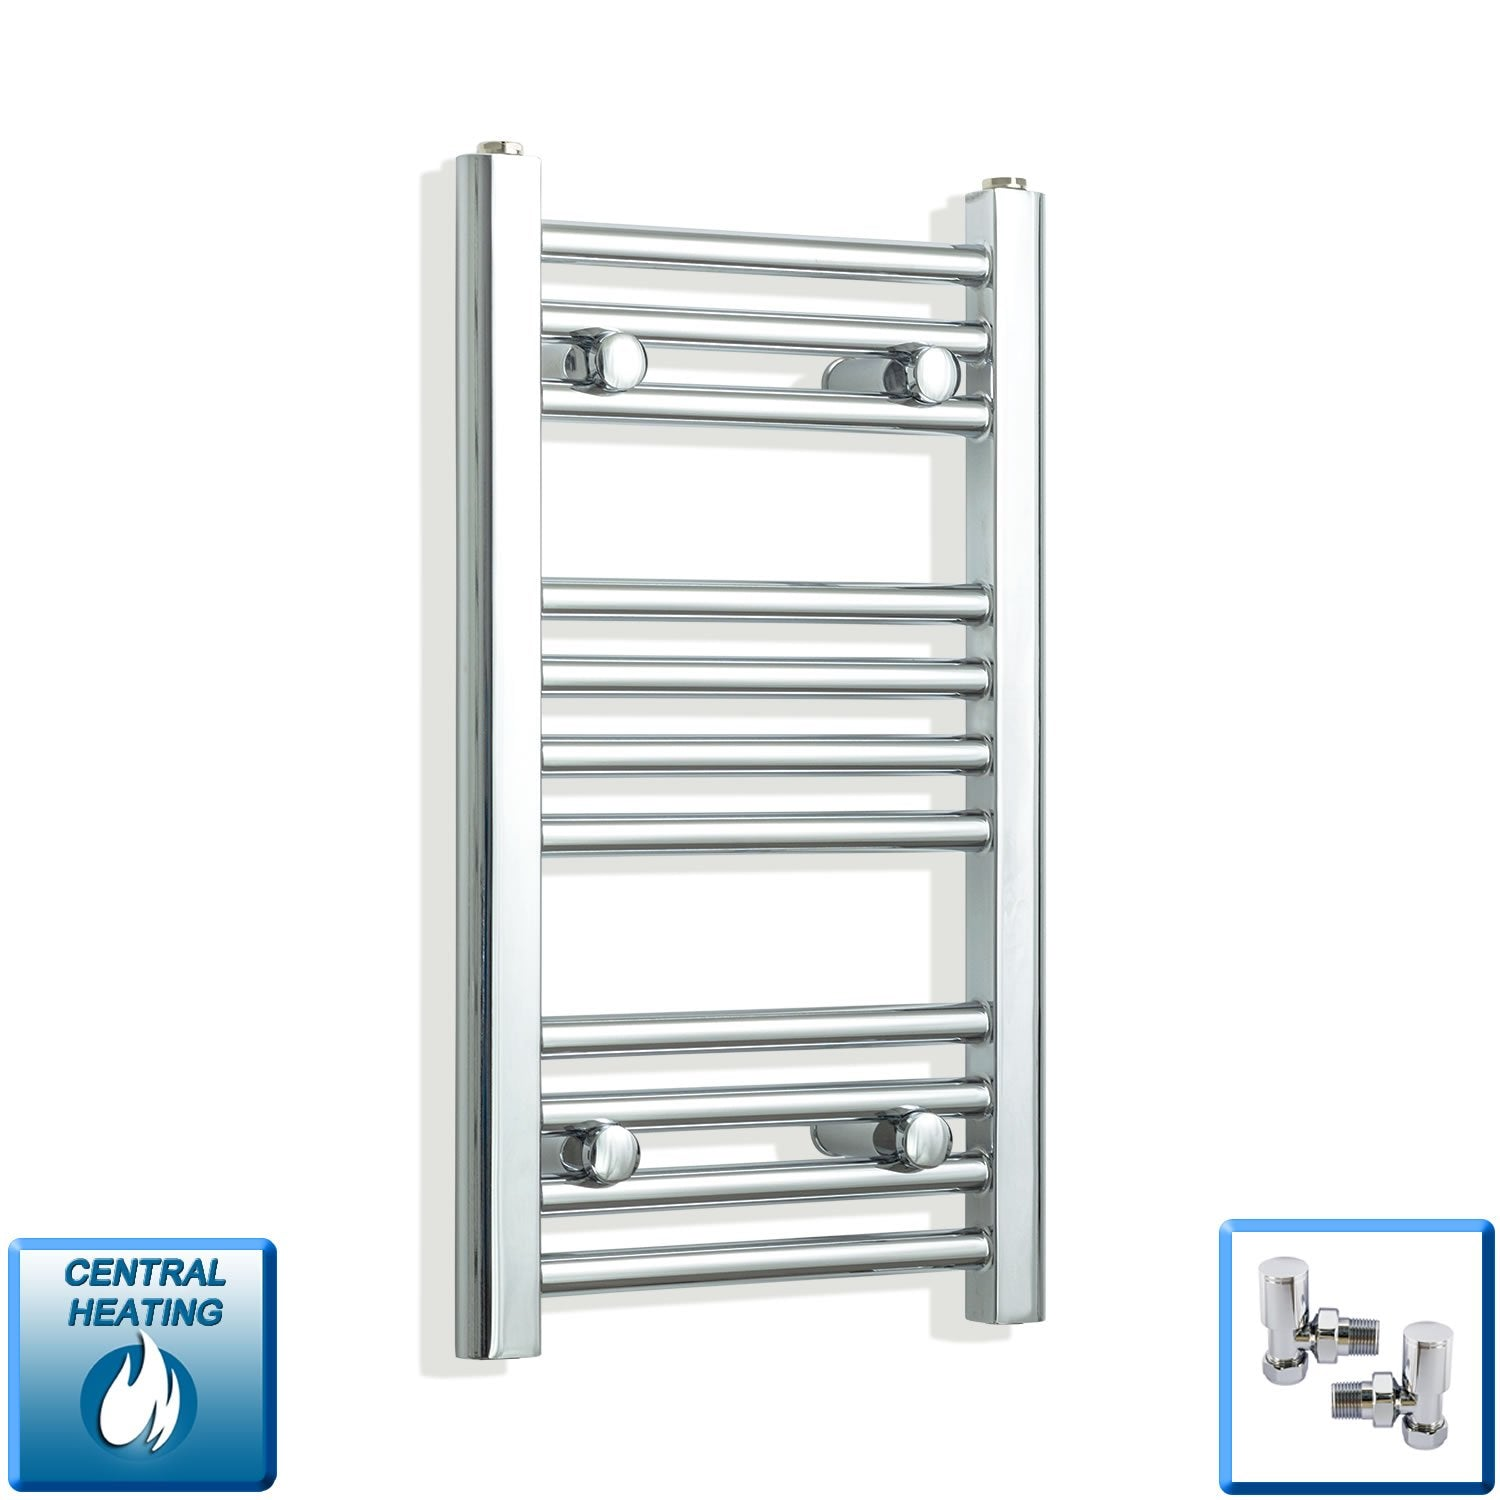 350mm Wide 600mm High Flat Chrome Heated Towel Rail Radiator,With Angled Valve